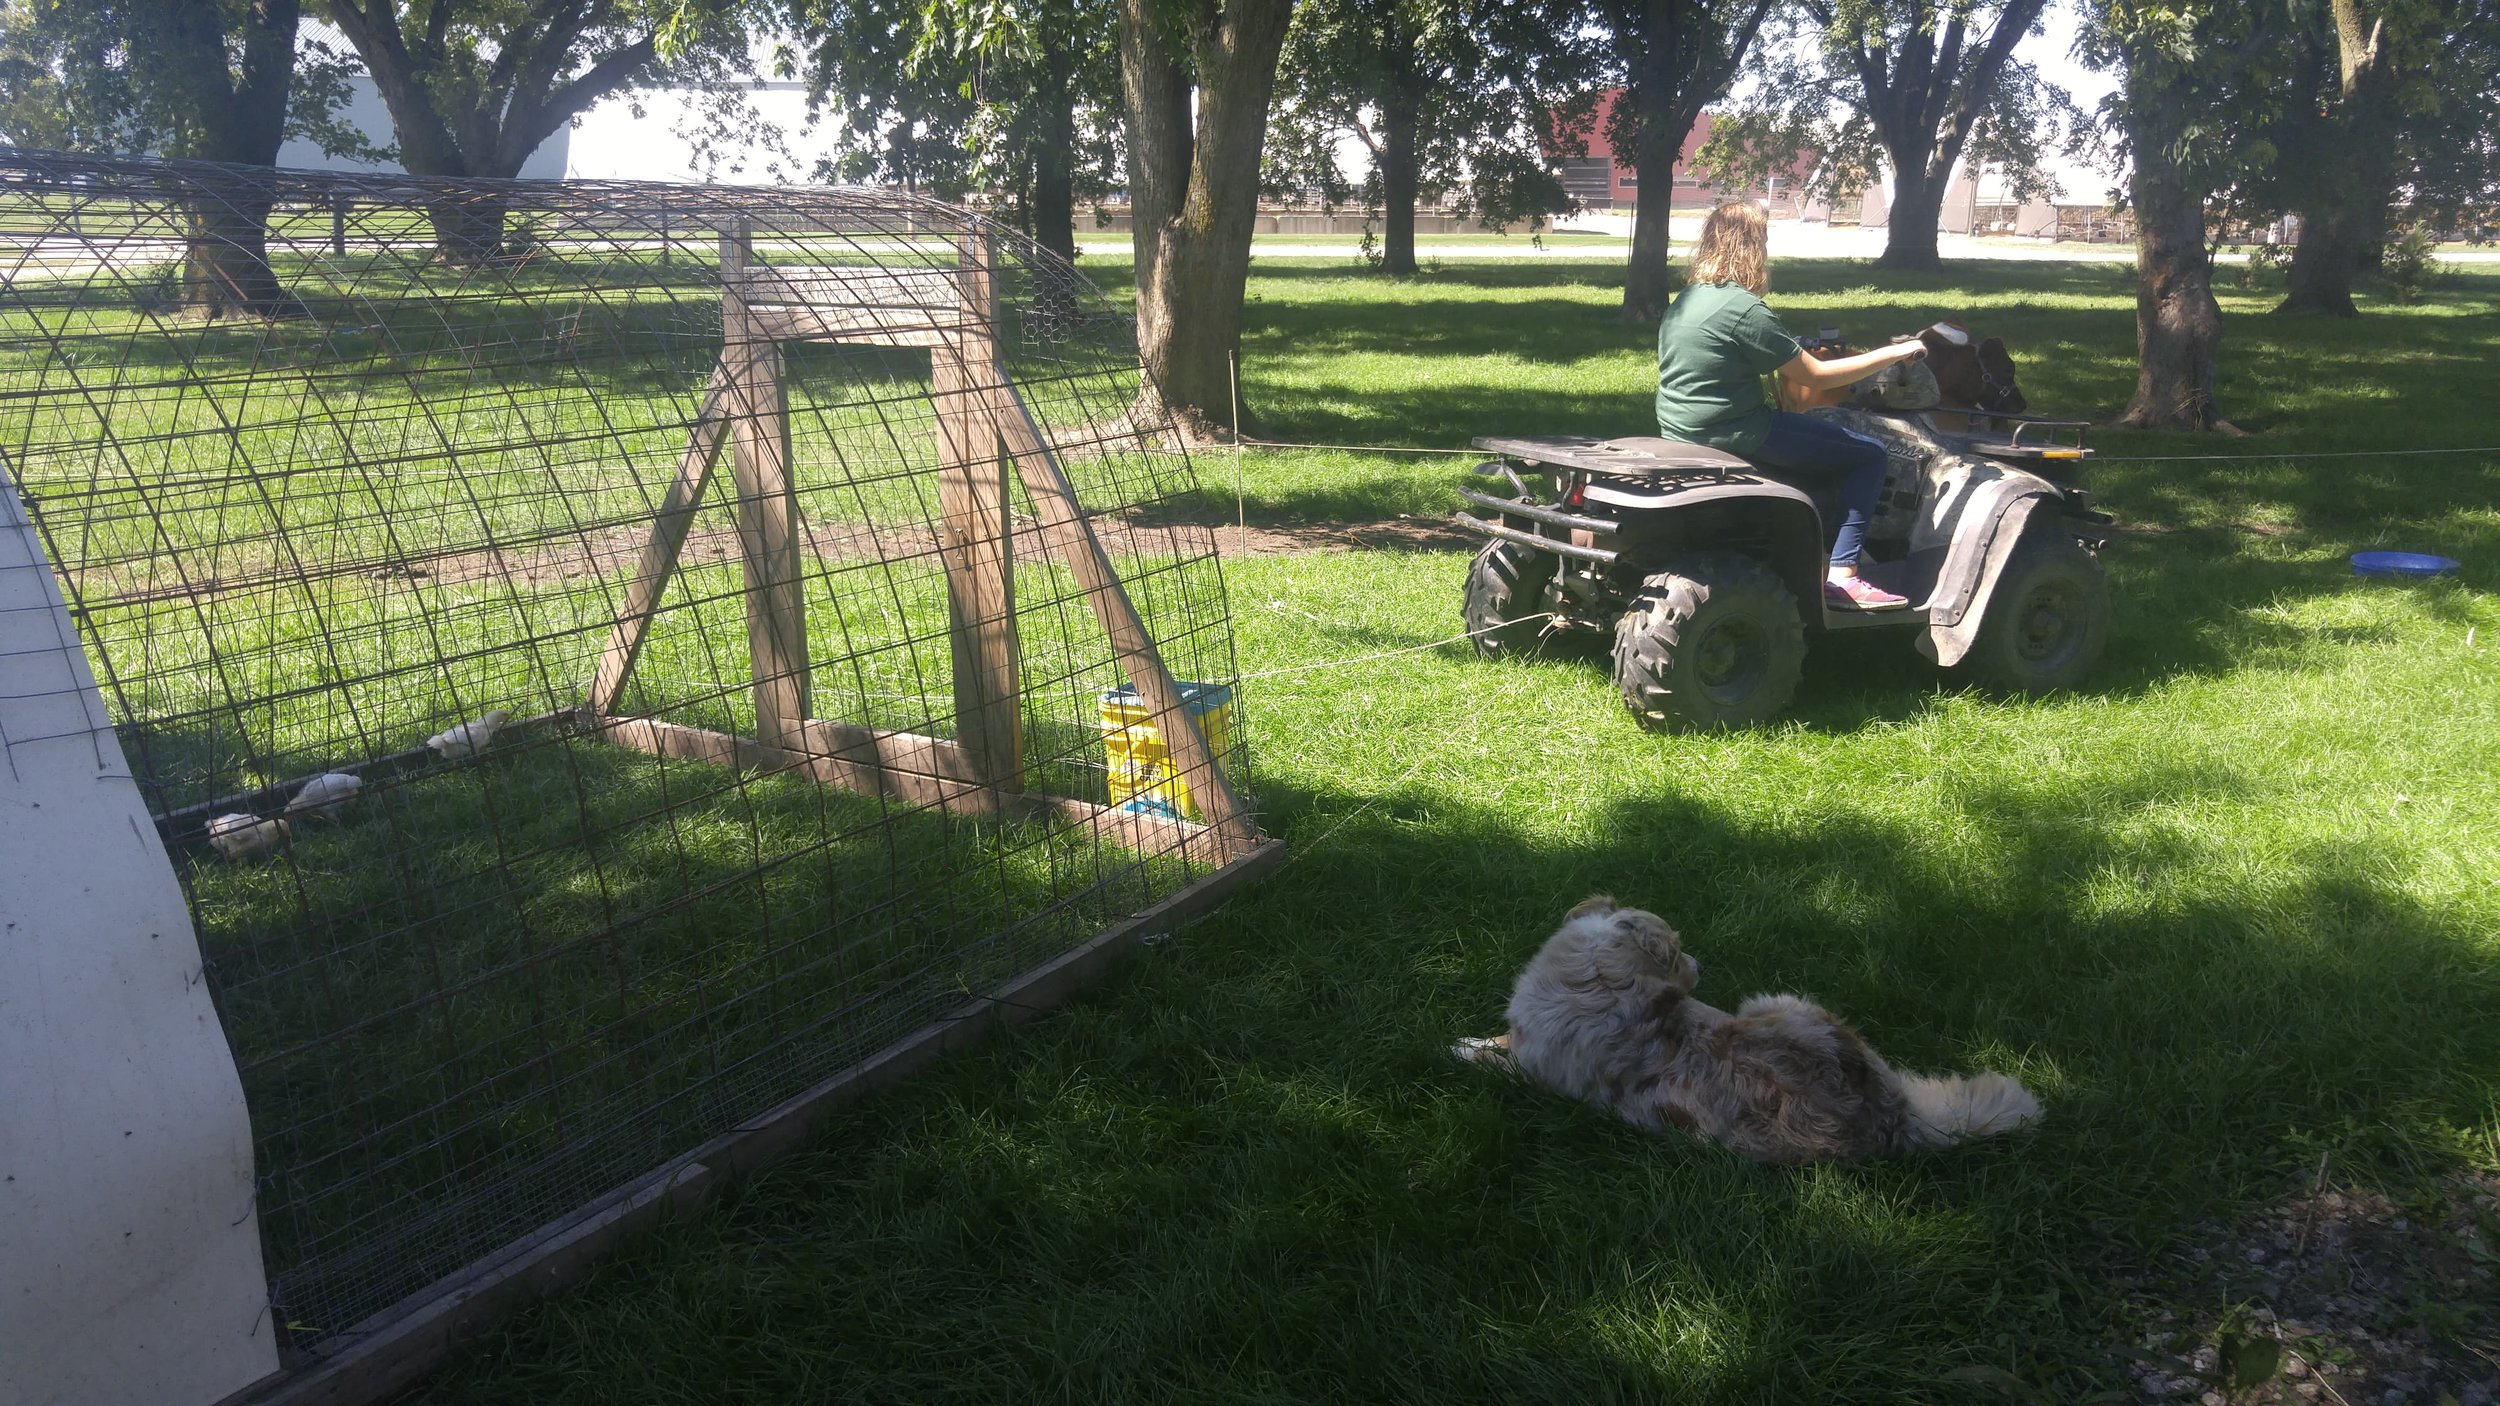 Penny's making sure K~ is moving the chickens in an appropriate manner. AKA slacking on the job..